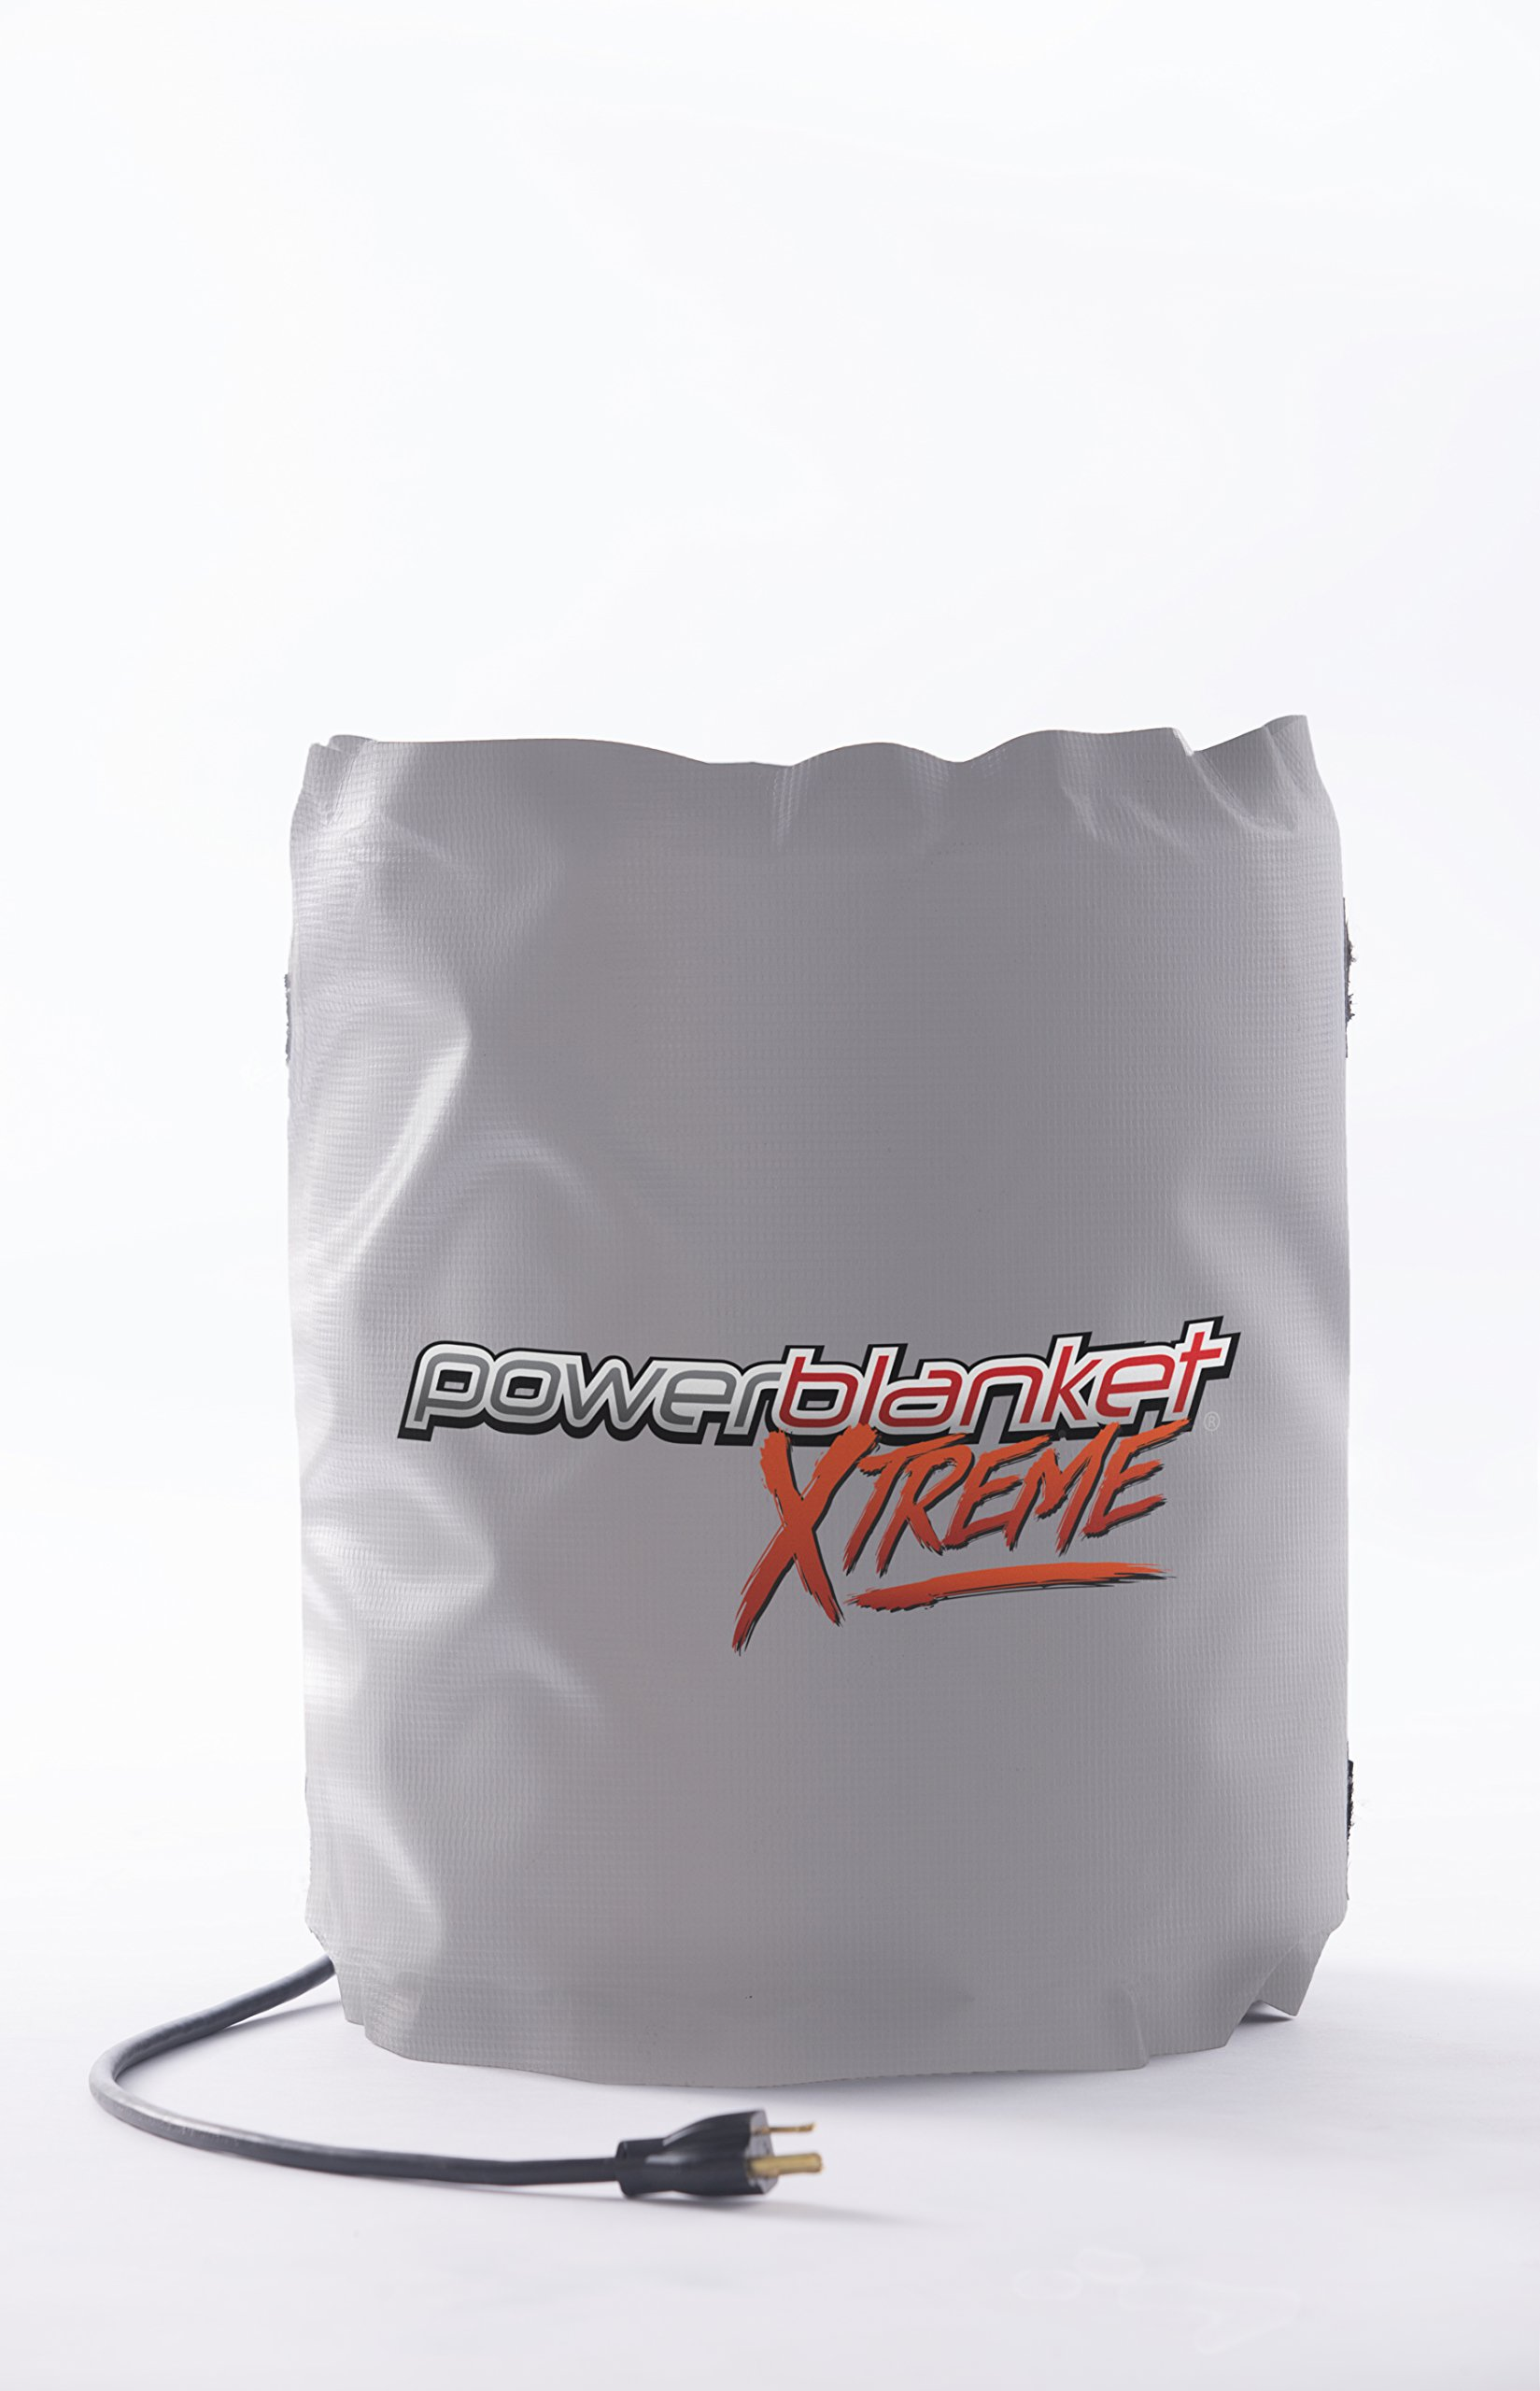 Powerblanket Xtreme BH05RRG 5-Gallon Insulated Pail Heating Blanket w/rugged alloy vinyl shell rated down to -40 °F